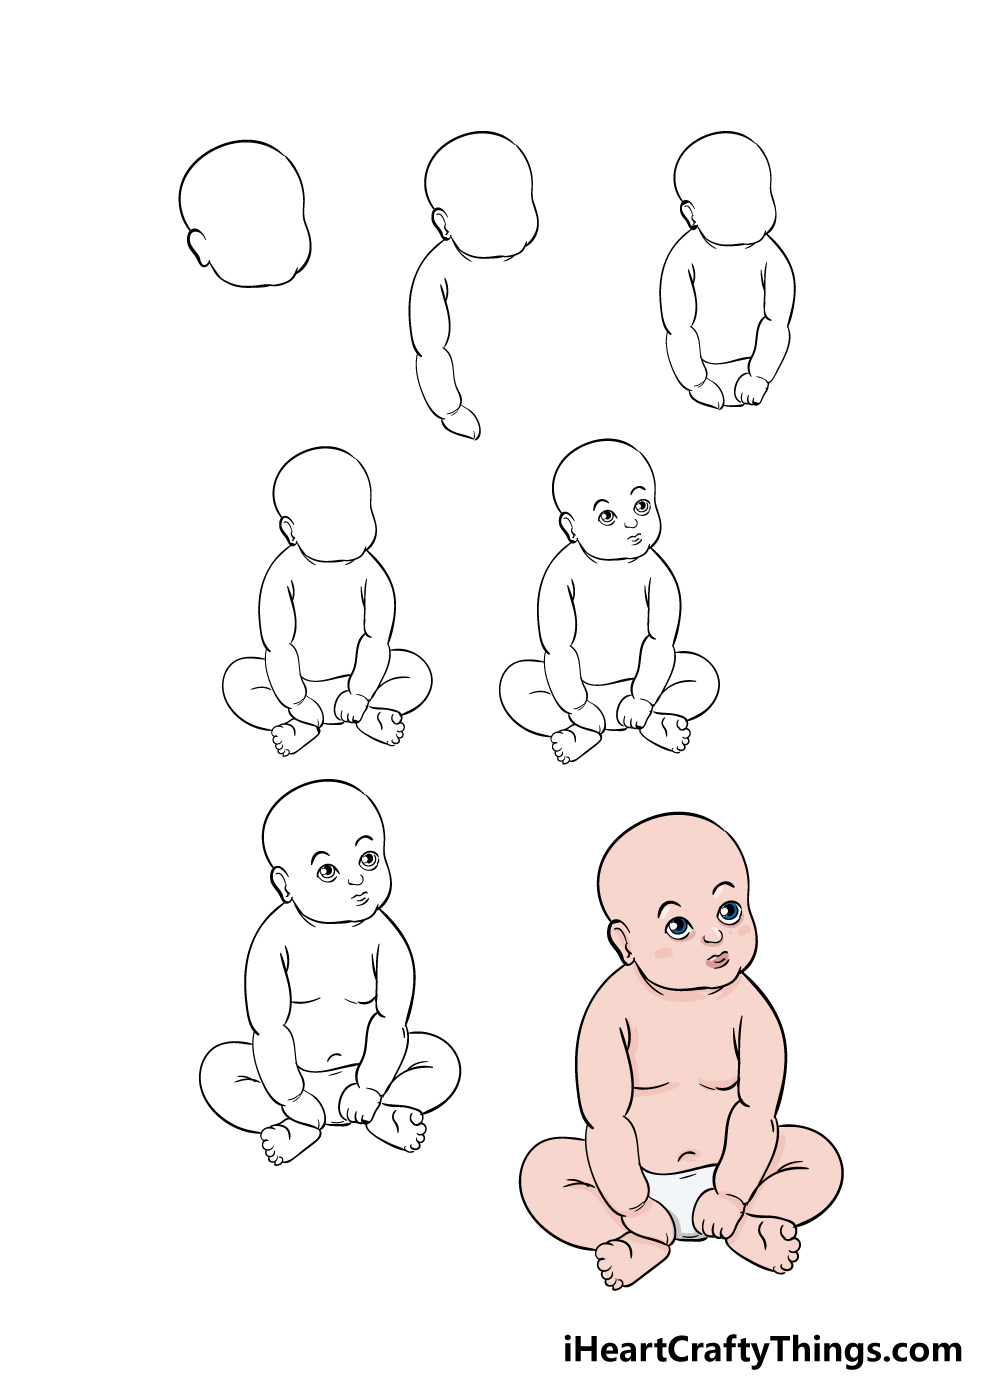 how to draw baby in 7 steps